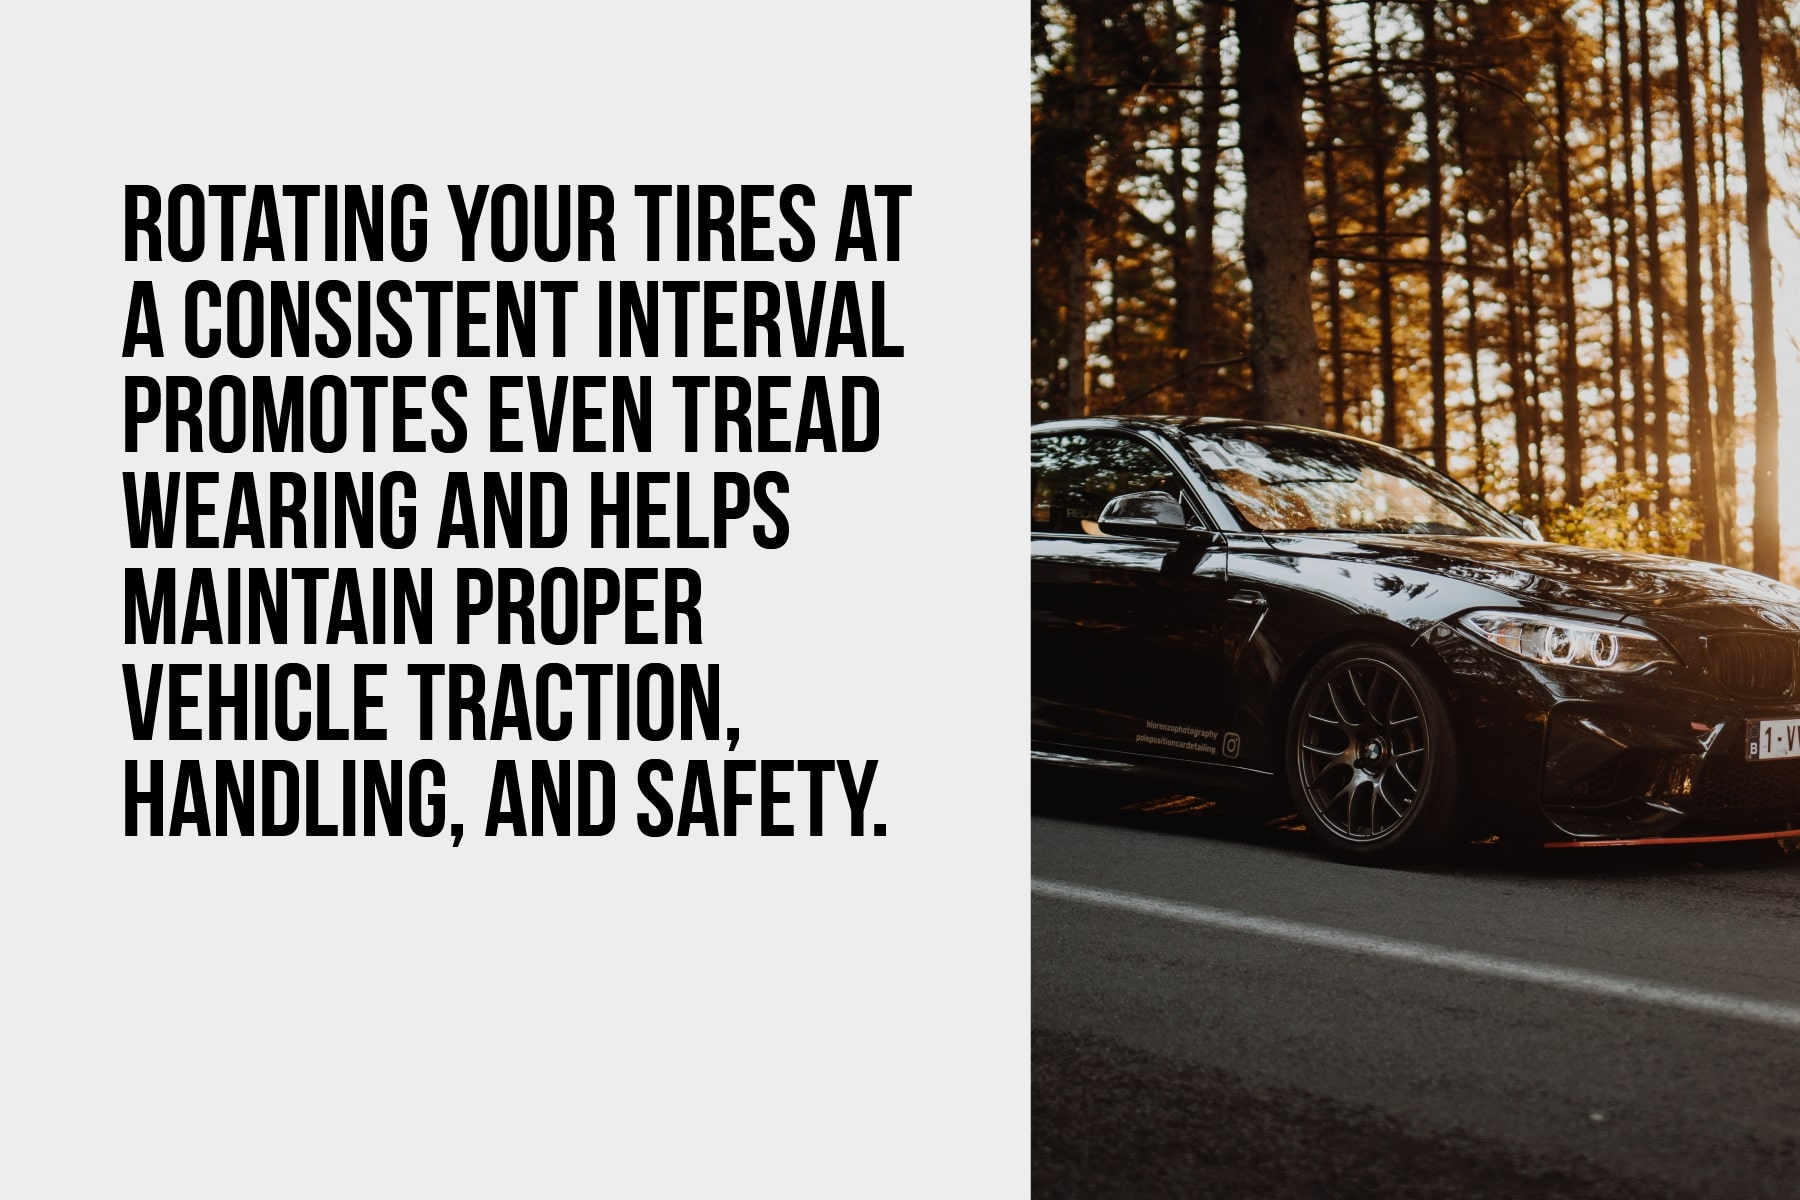 rotate tires for even tread wearing